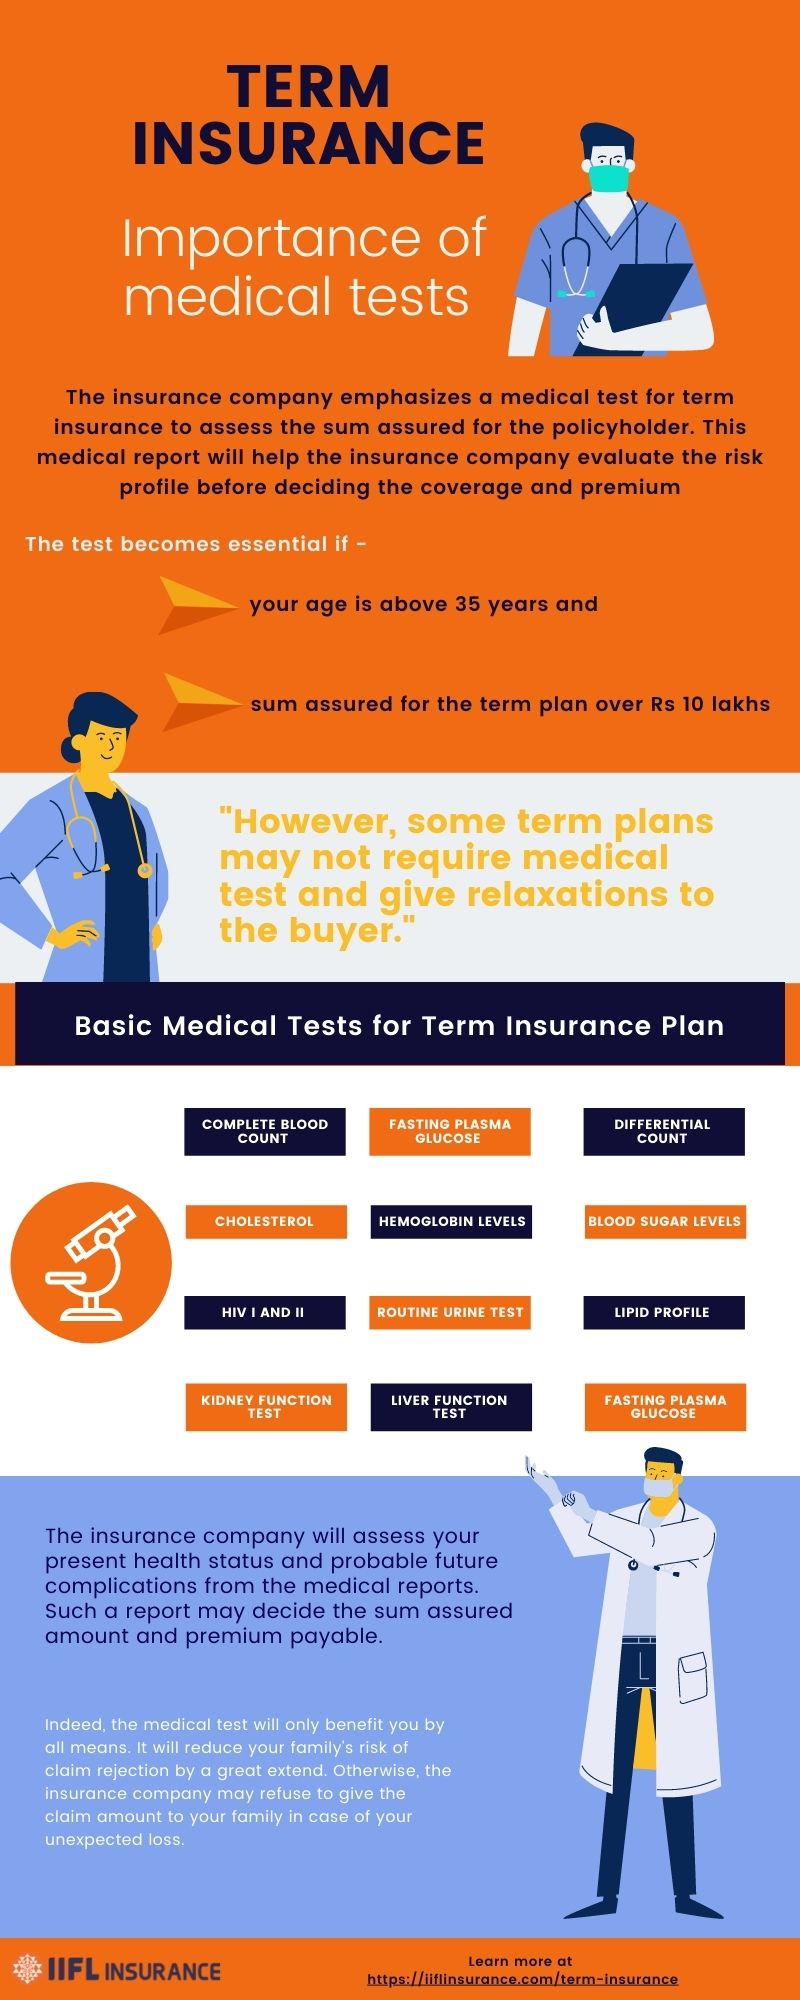 importance of medical tests in term insurance